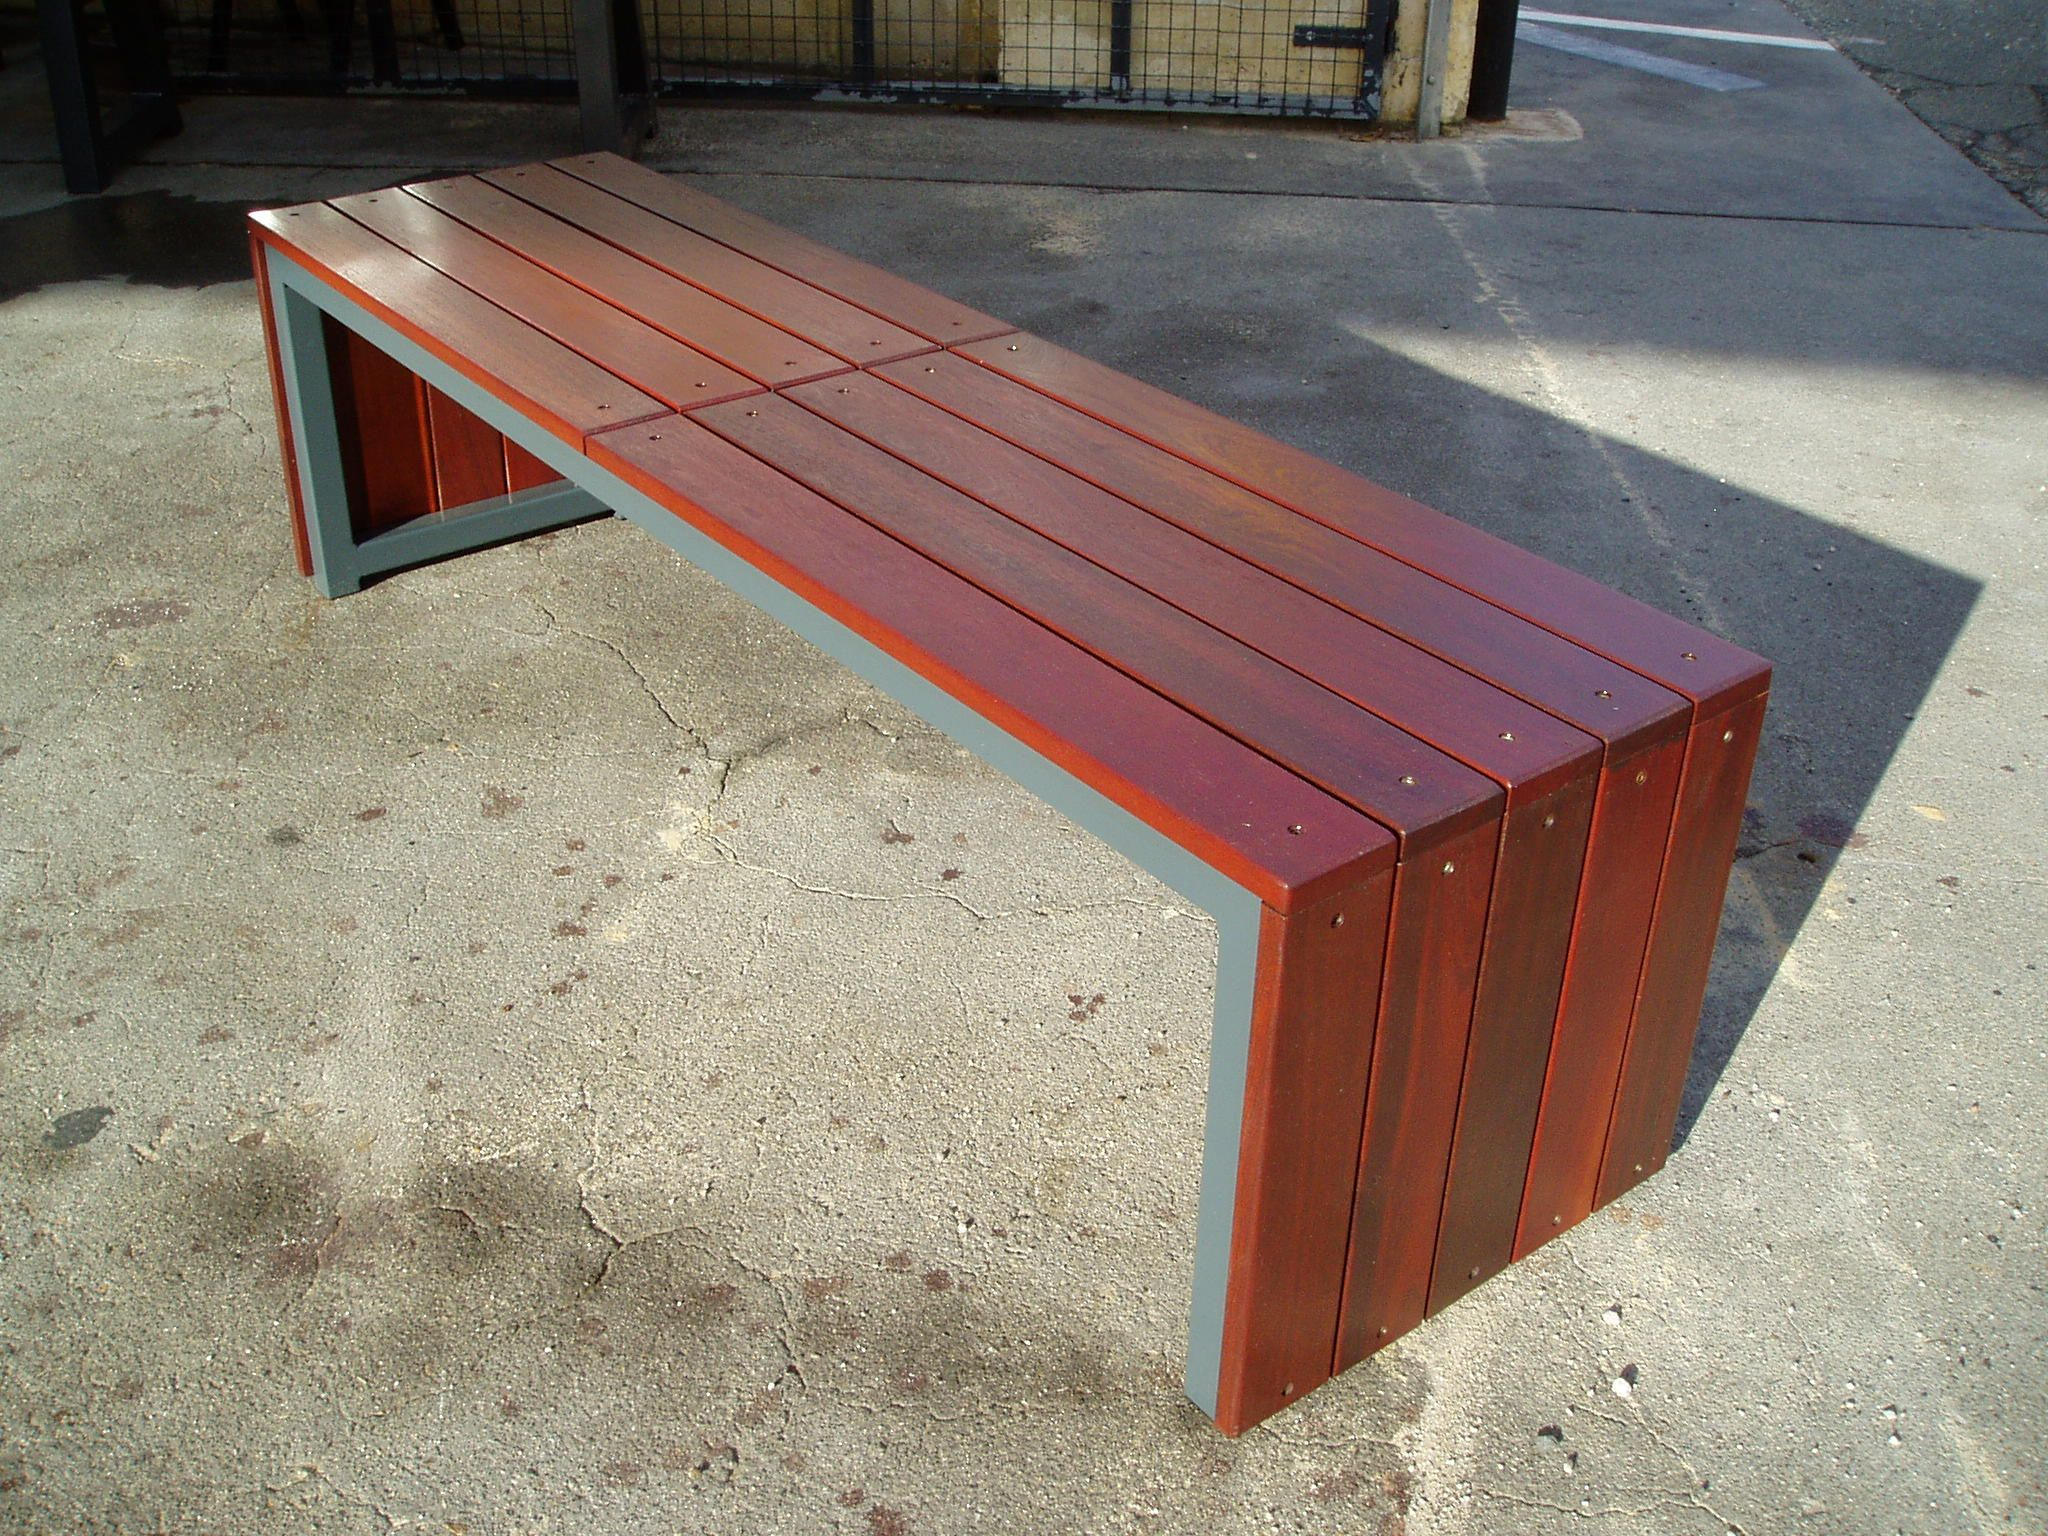 Garden Furniture Table Bench Seat outdoor bench seats - google search | decks benches and screens